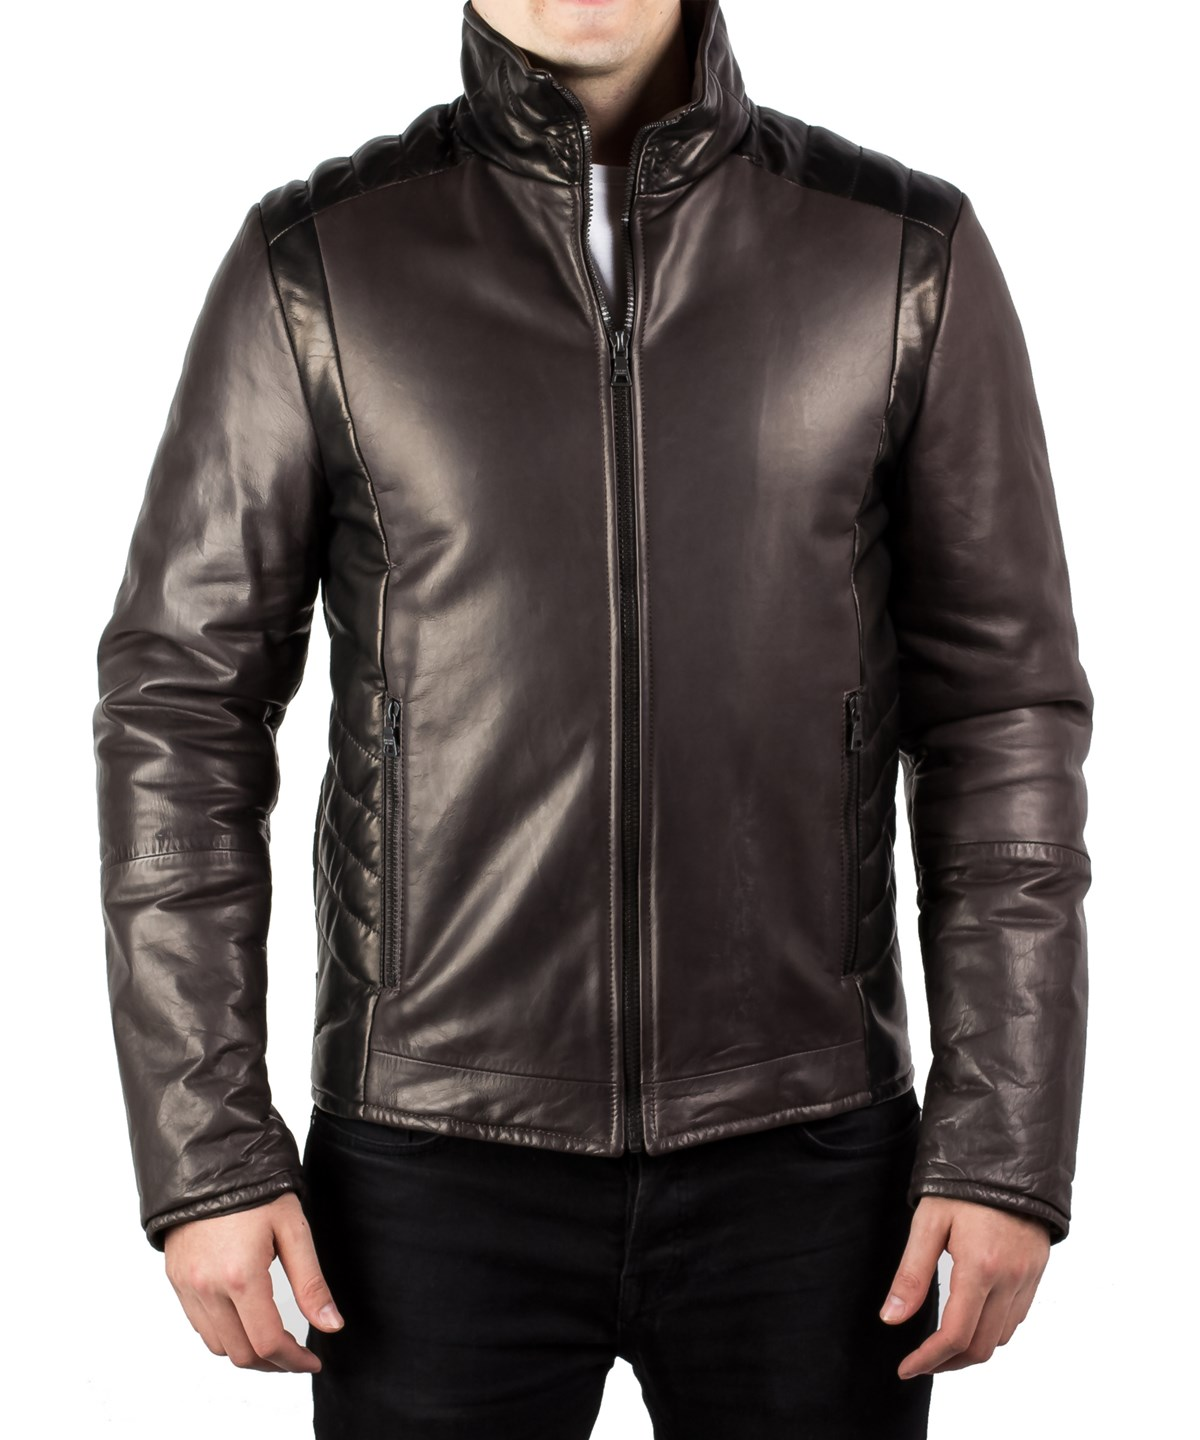 Prada Men's Motorcycle Soft Quilted Leather Zip Jacket Coat Dark Grey Black